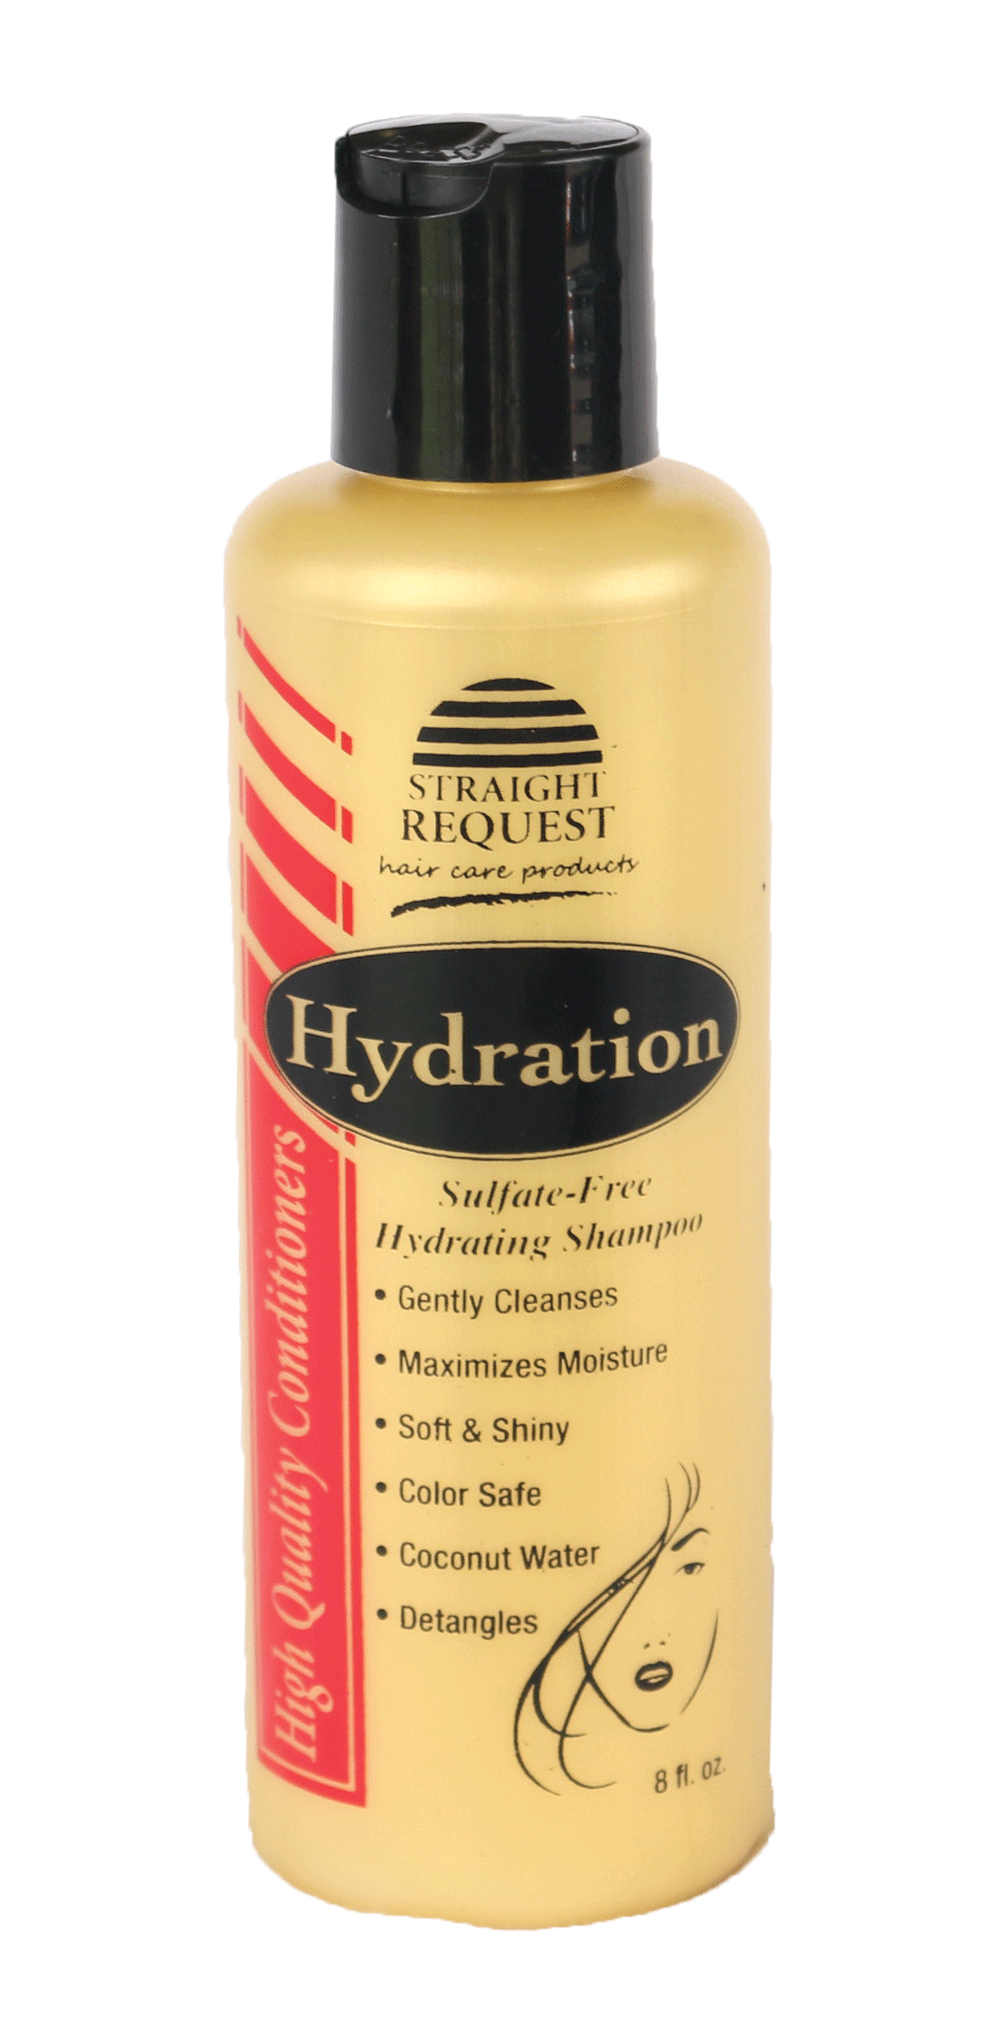 Hydration Treatment Shampoo - 8oz